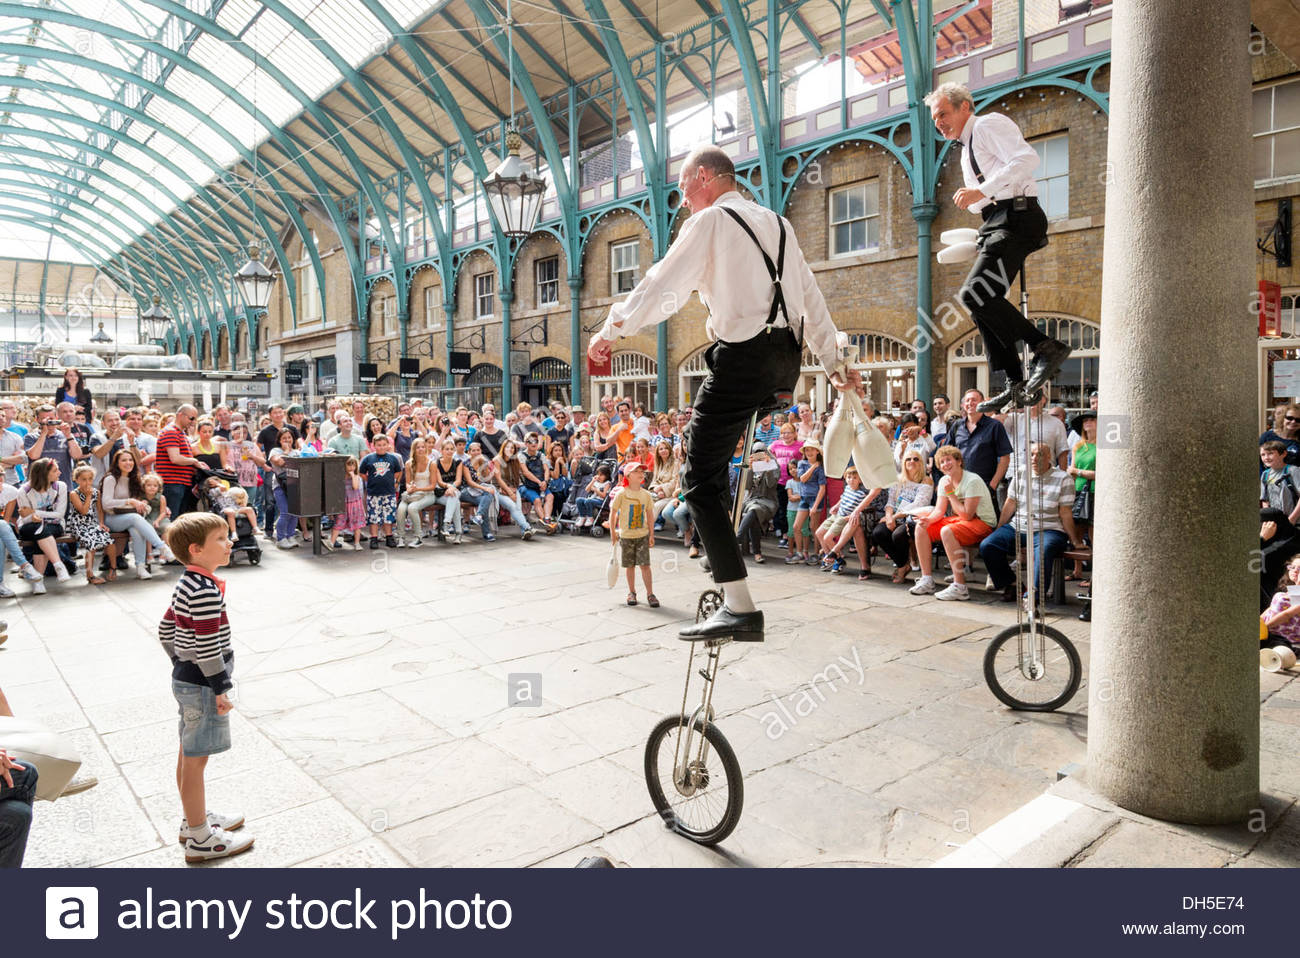 Unicycle performers in Covent Garden, London, England, UK - Stock Image